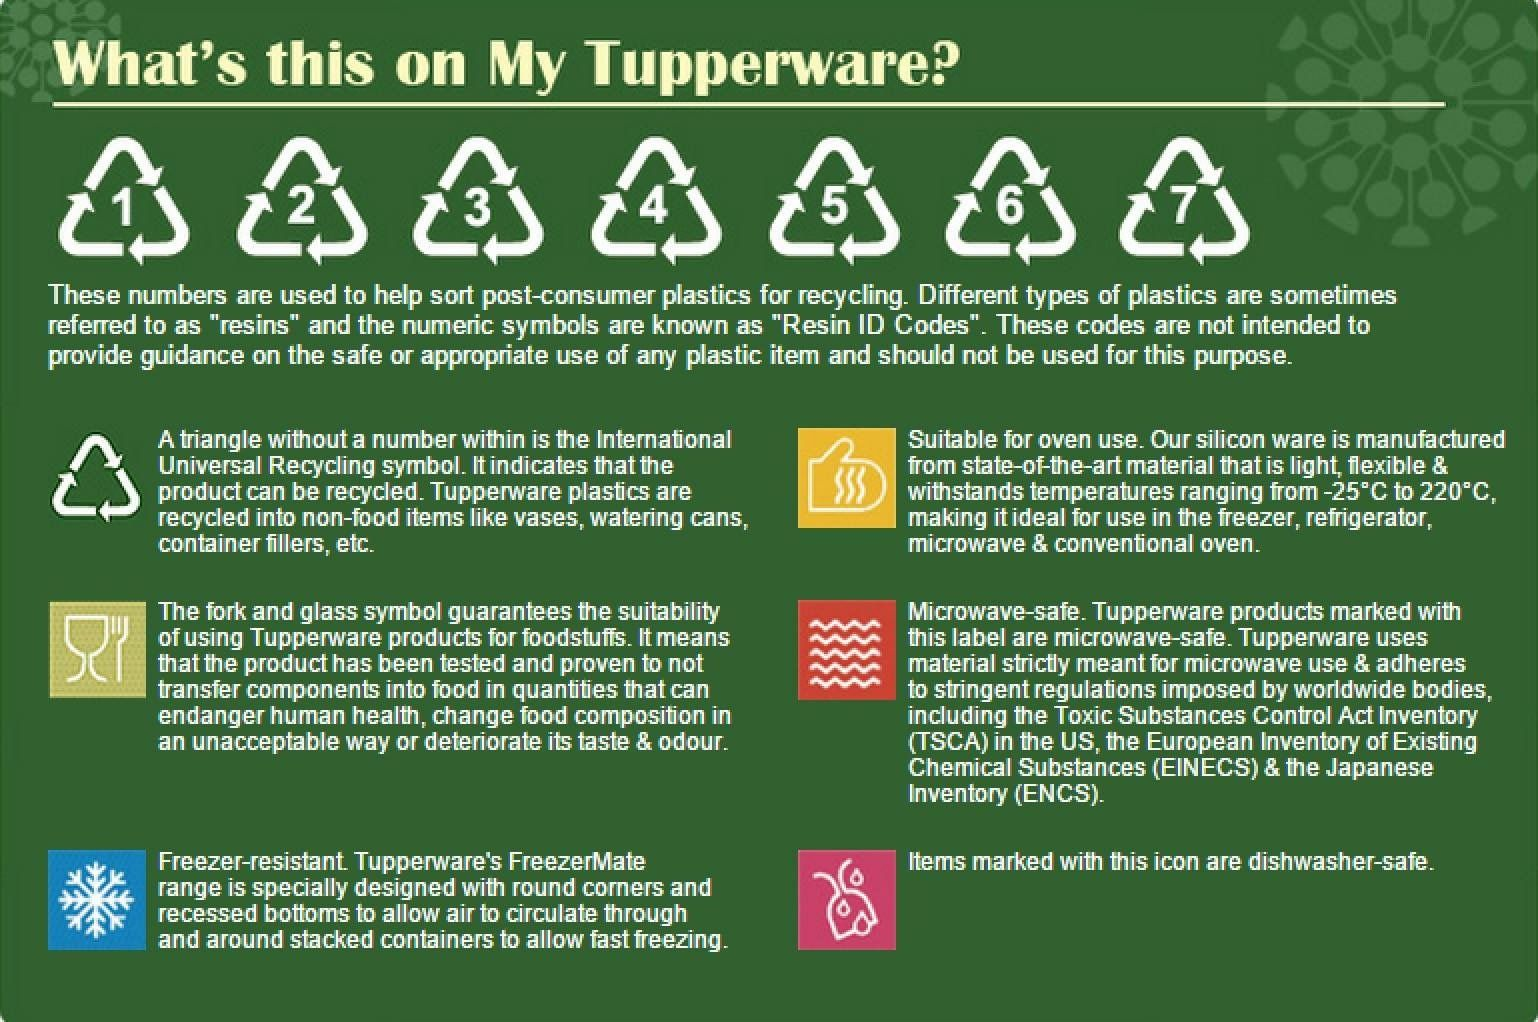 Pin by clyde ely on tupperware pinterest tupperware tub buycottarizona